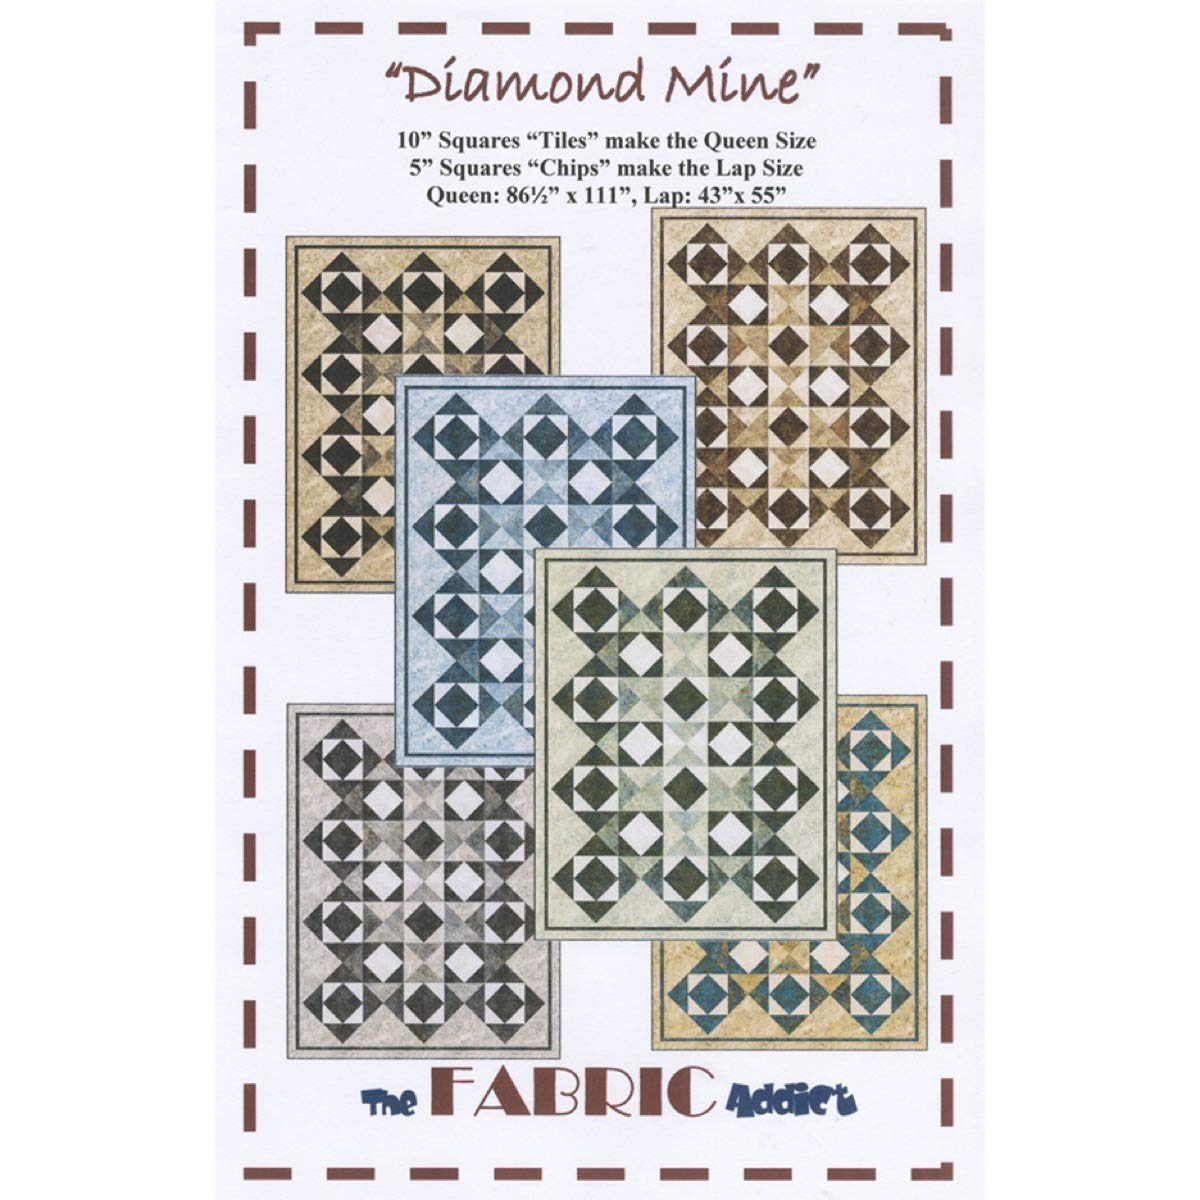 Diamond Mine Quilt Pattern by The Fabric Addict ik